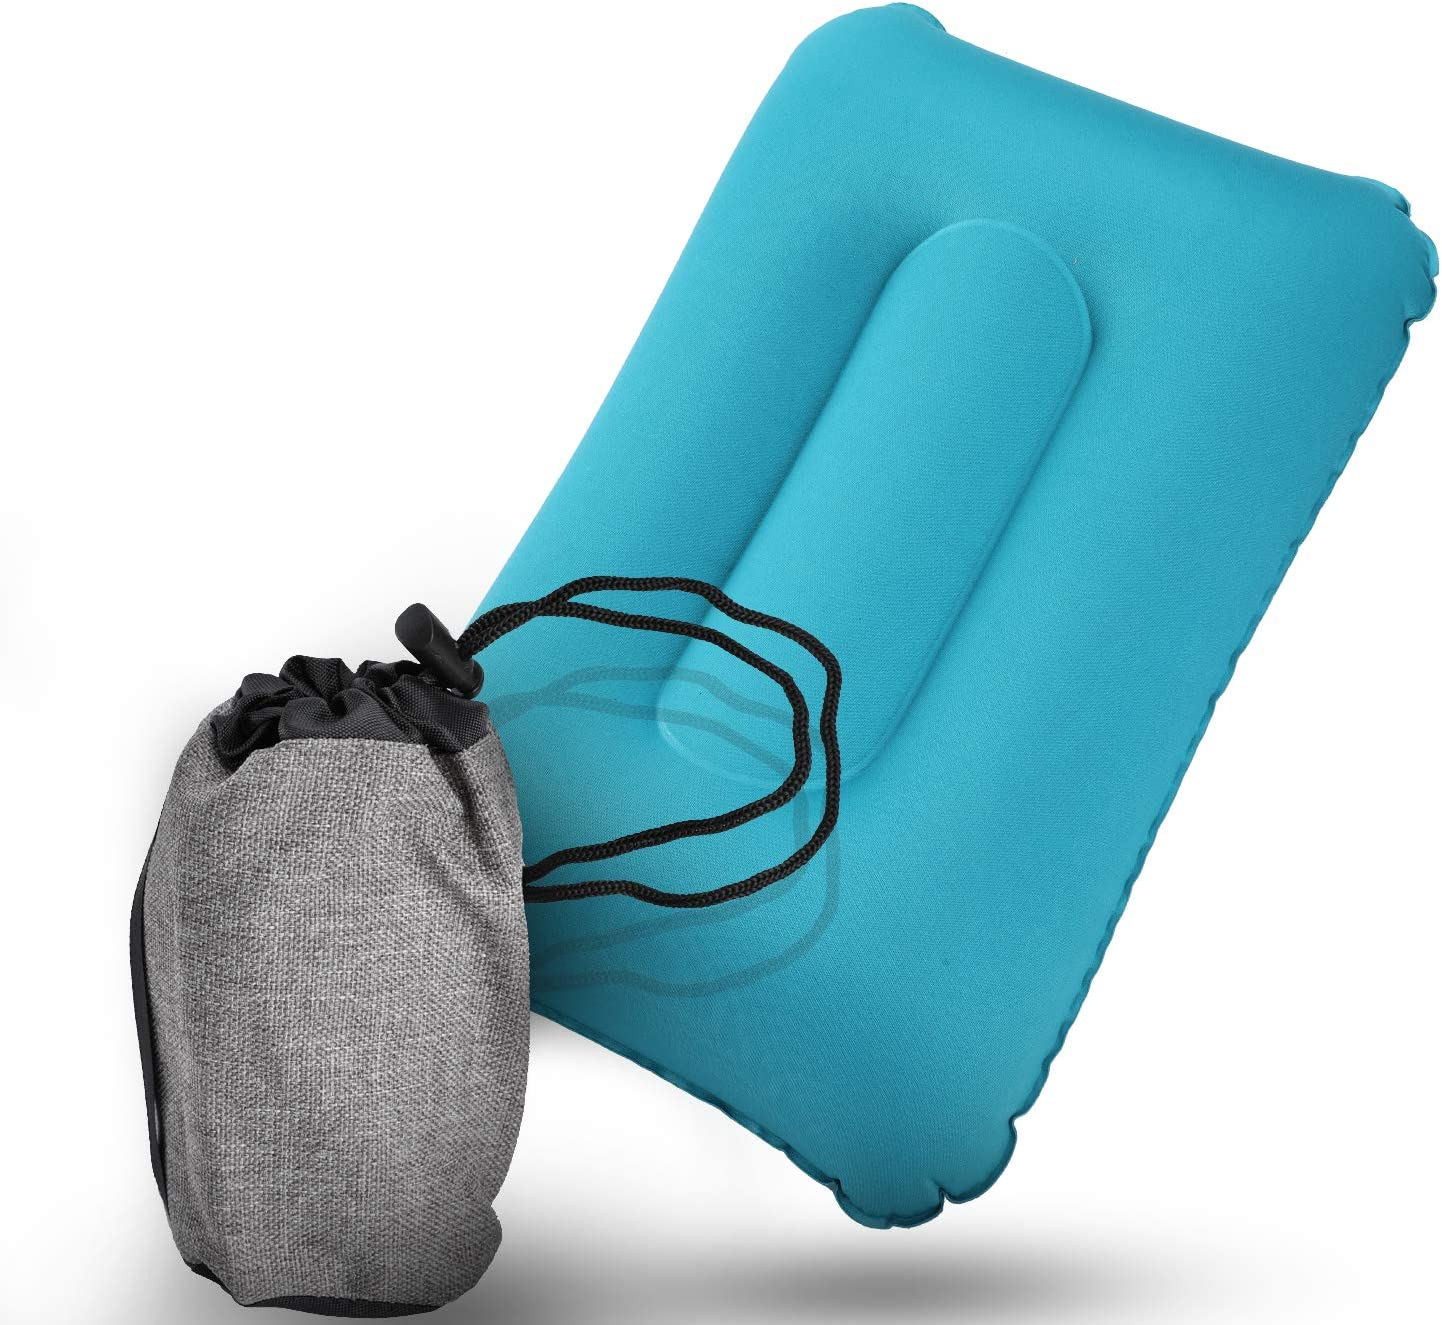 BFVV Ultralight Inflatable Pillow Backpacking Camping Air Pillows Compressible for Neck & Lumbar Support While Hiking, Airplane & Road Trip